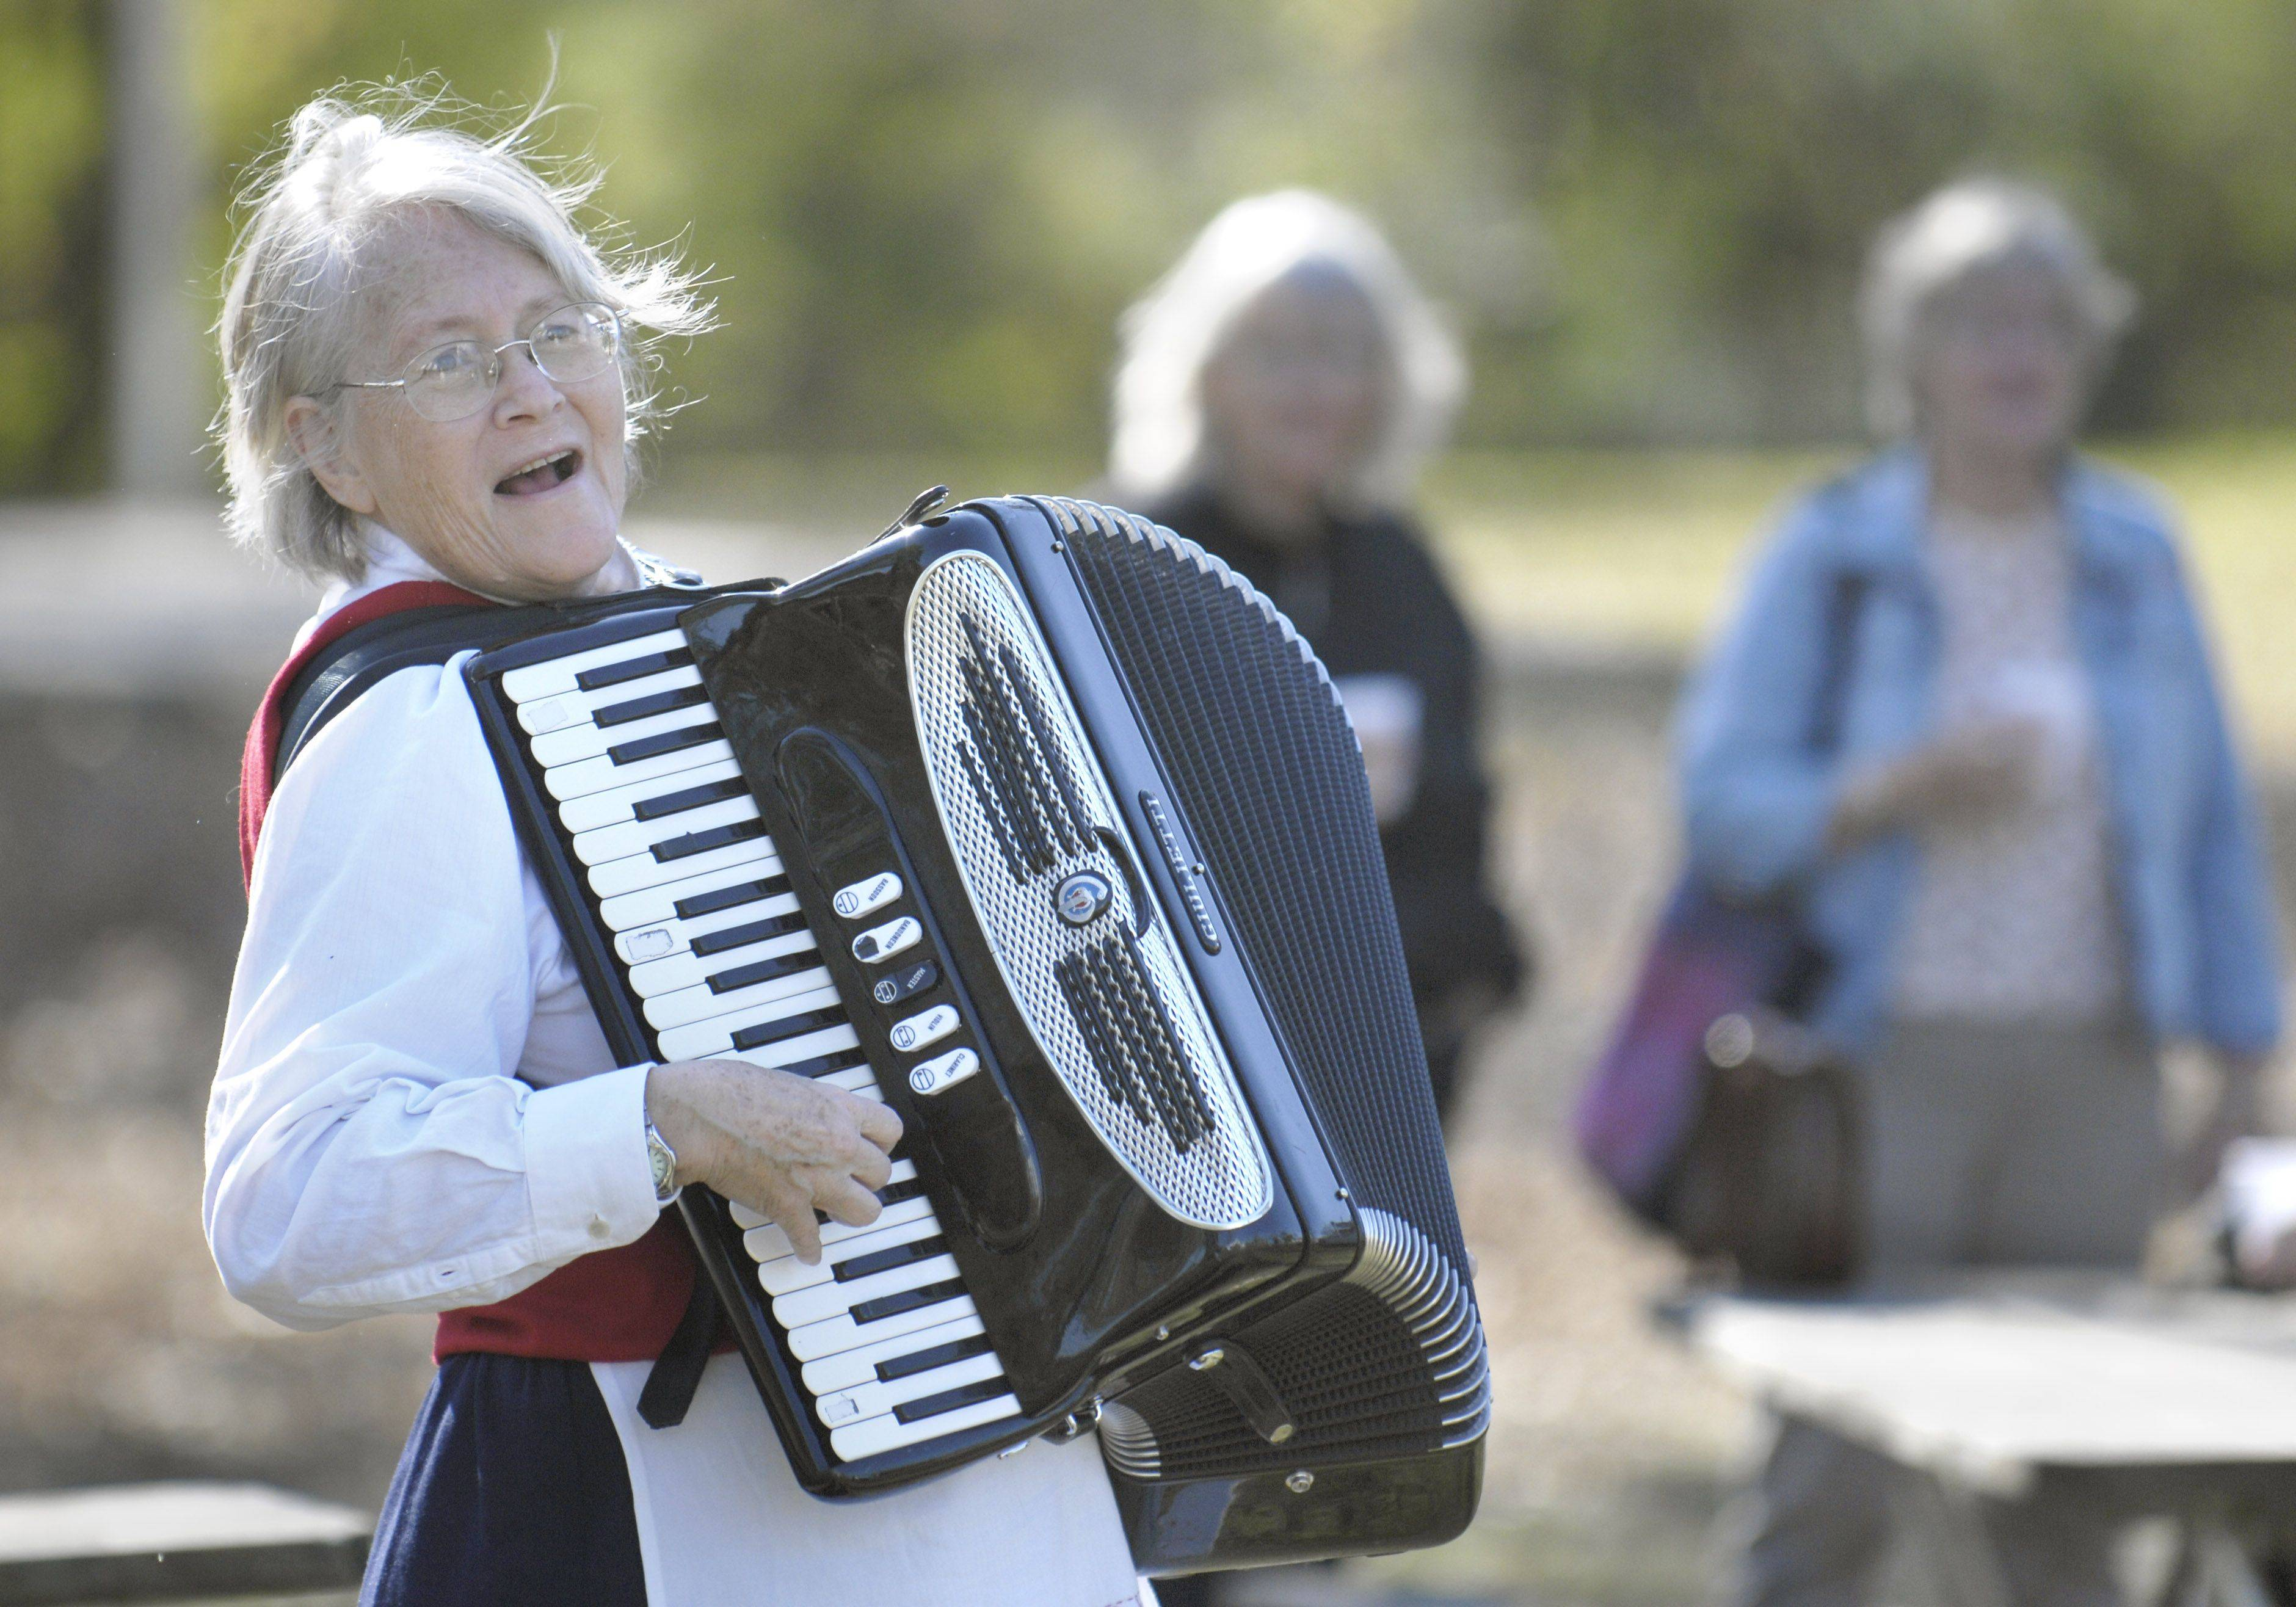 Pat Spaeth of Round Lake entertains guests as they arrive to the 10th-annual Fish Boil & Harvest Fest at Vasa Park in South Elgin. Spaeth is a professional musician and has been playing the accordion since she was 15.